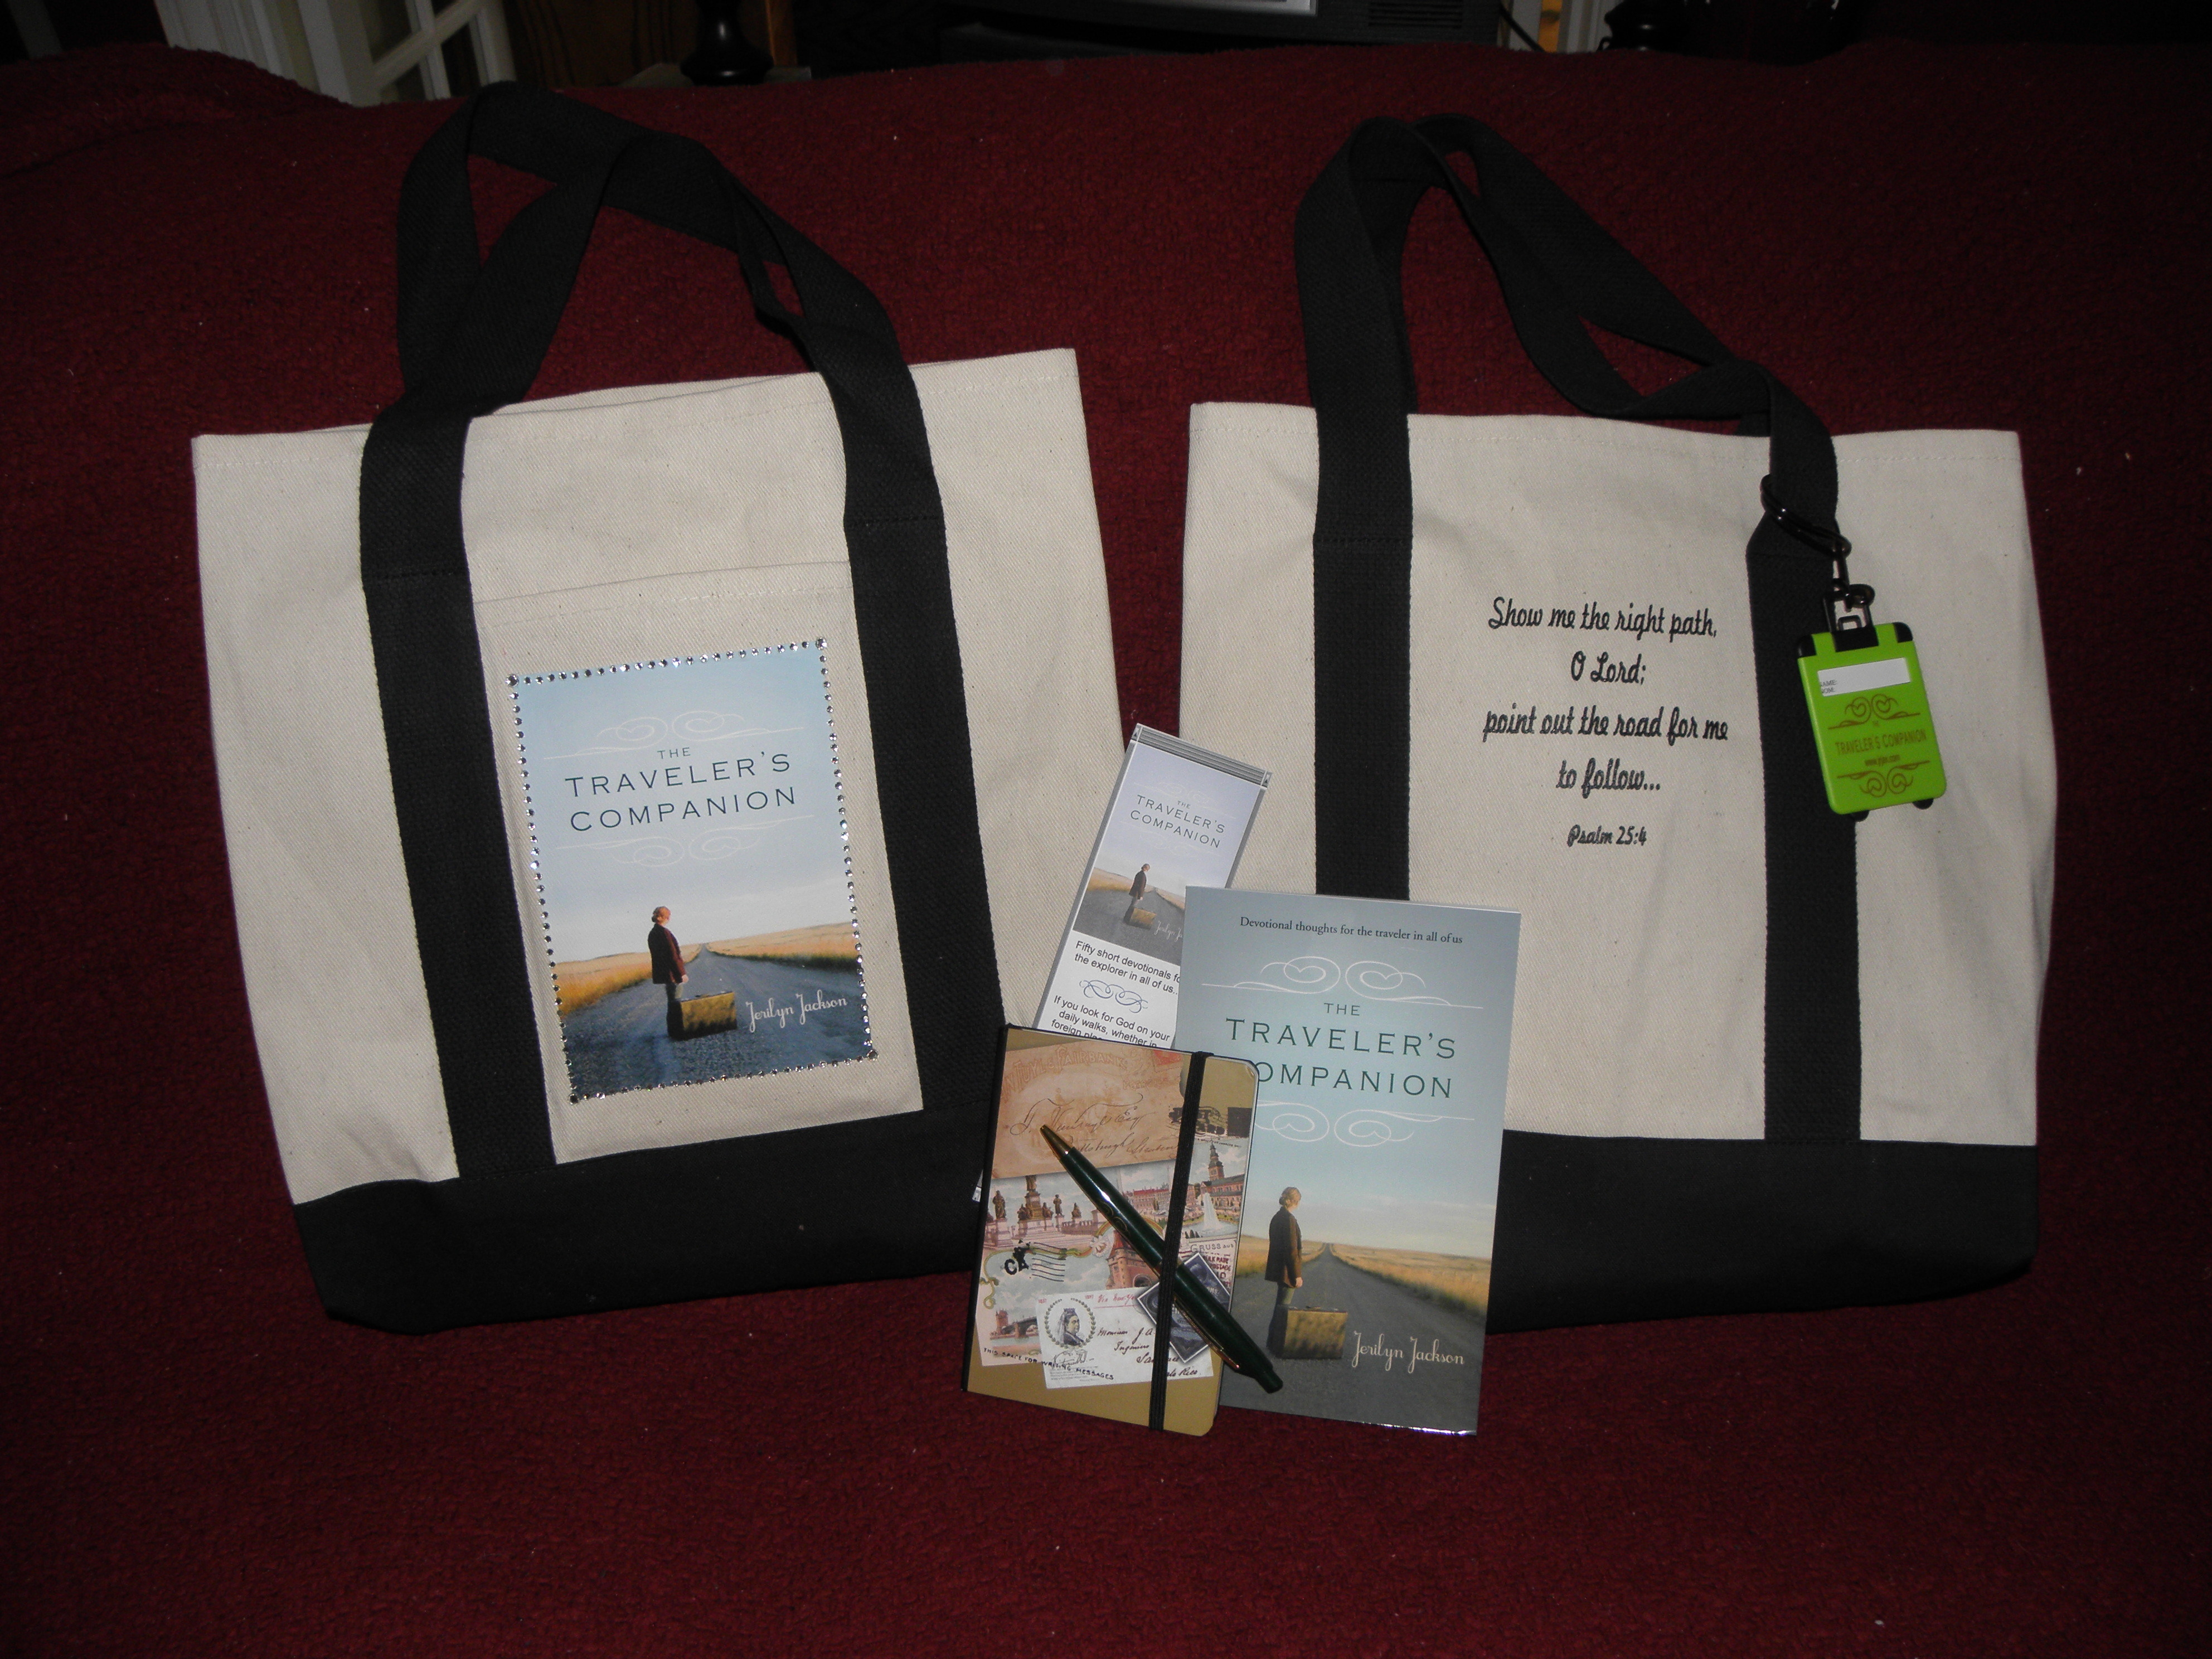 Bag, books, and stuff for sale